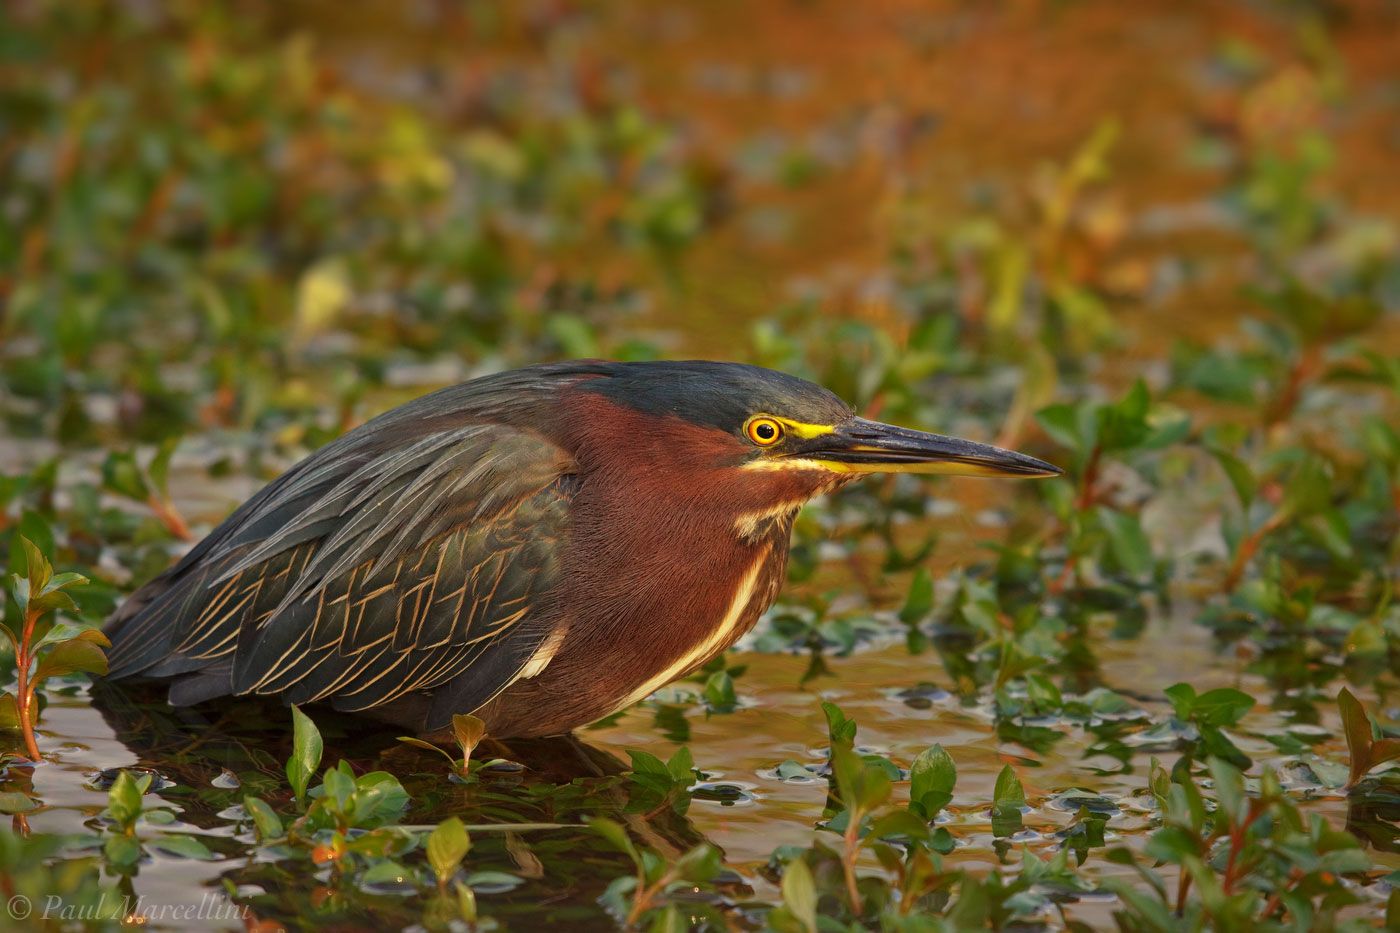 A Green Heron (Butorides virescens), one of the smallest in Florida, hunts minnows in the afternoon.